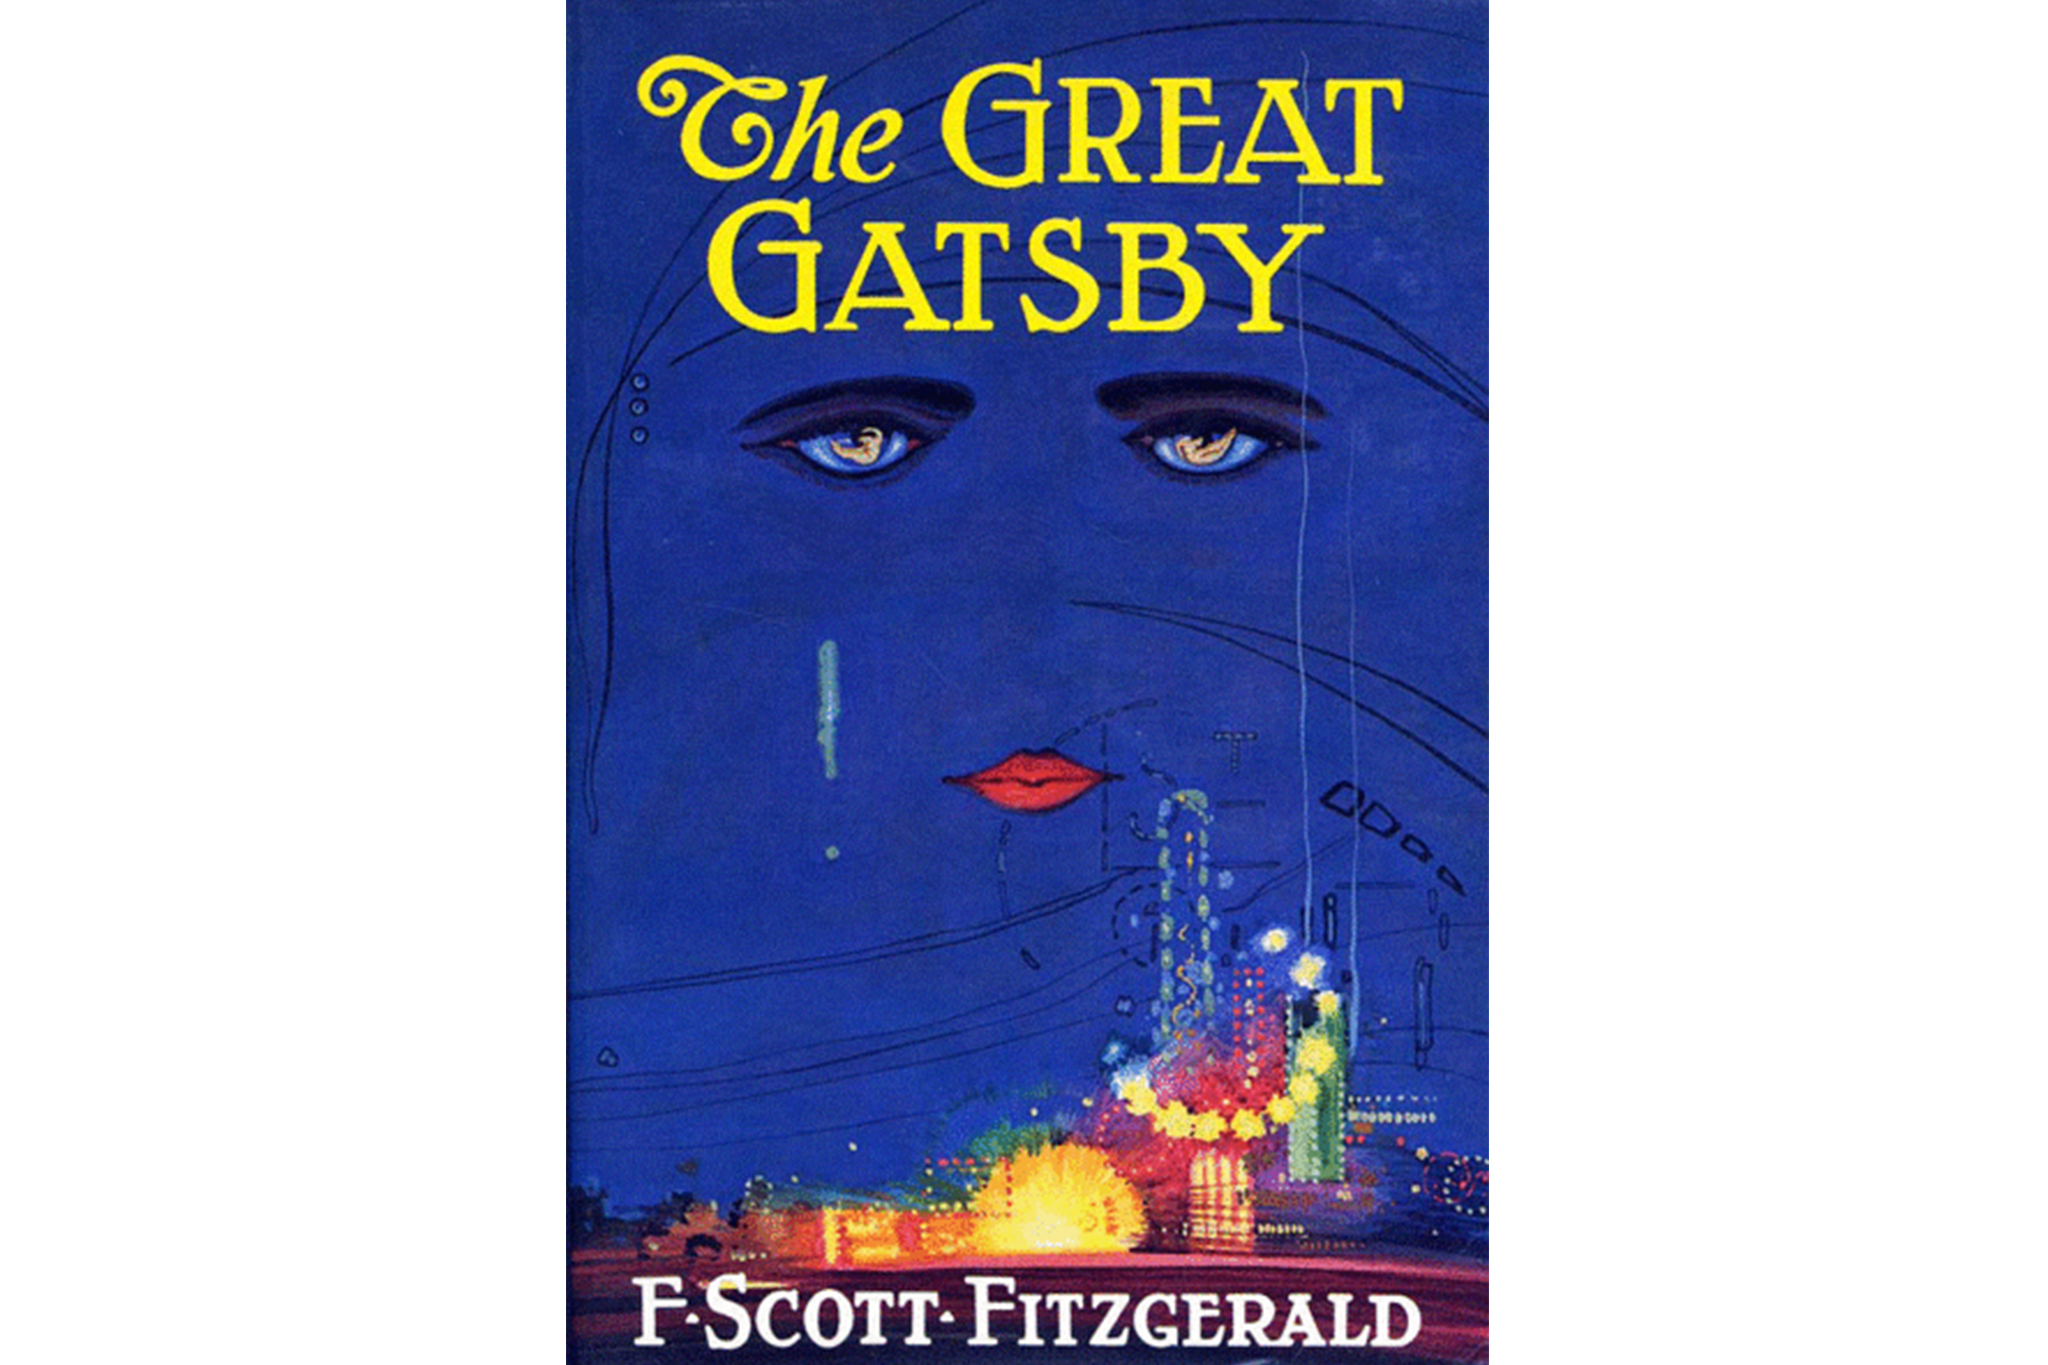 Shipwreck and WORD Present: The Great Gatsby